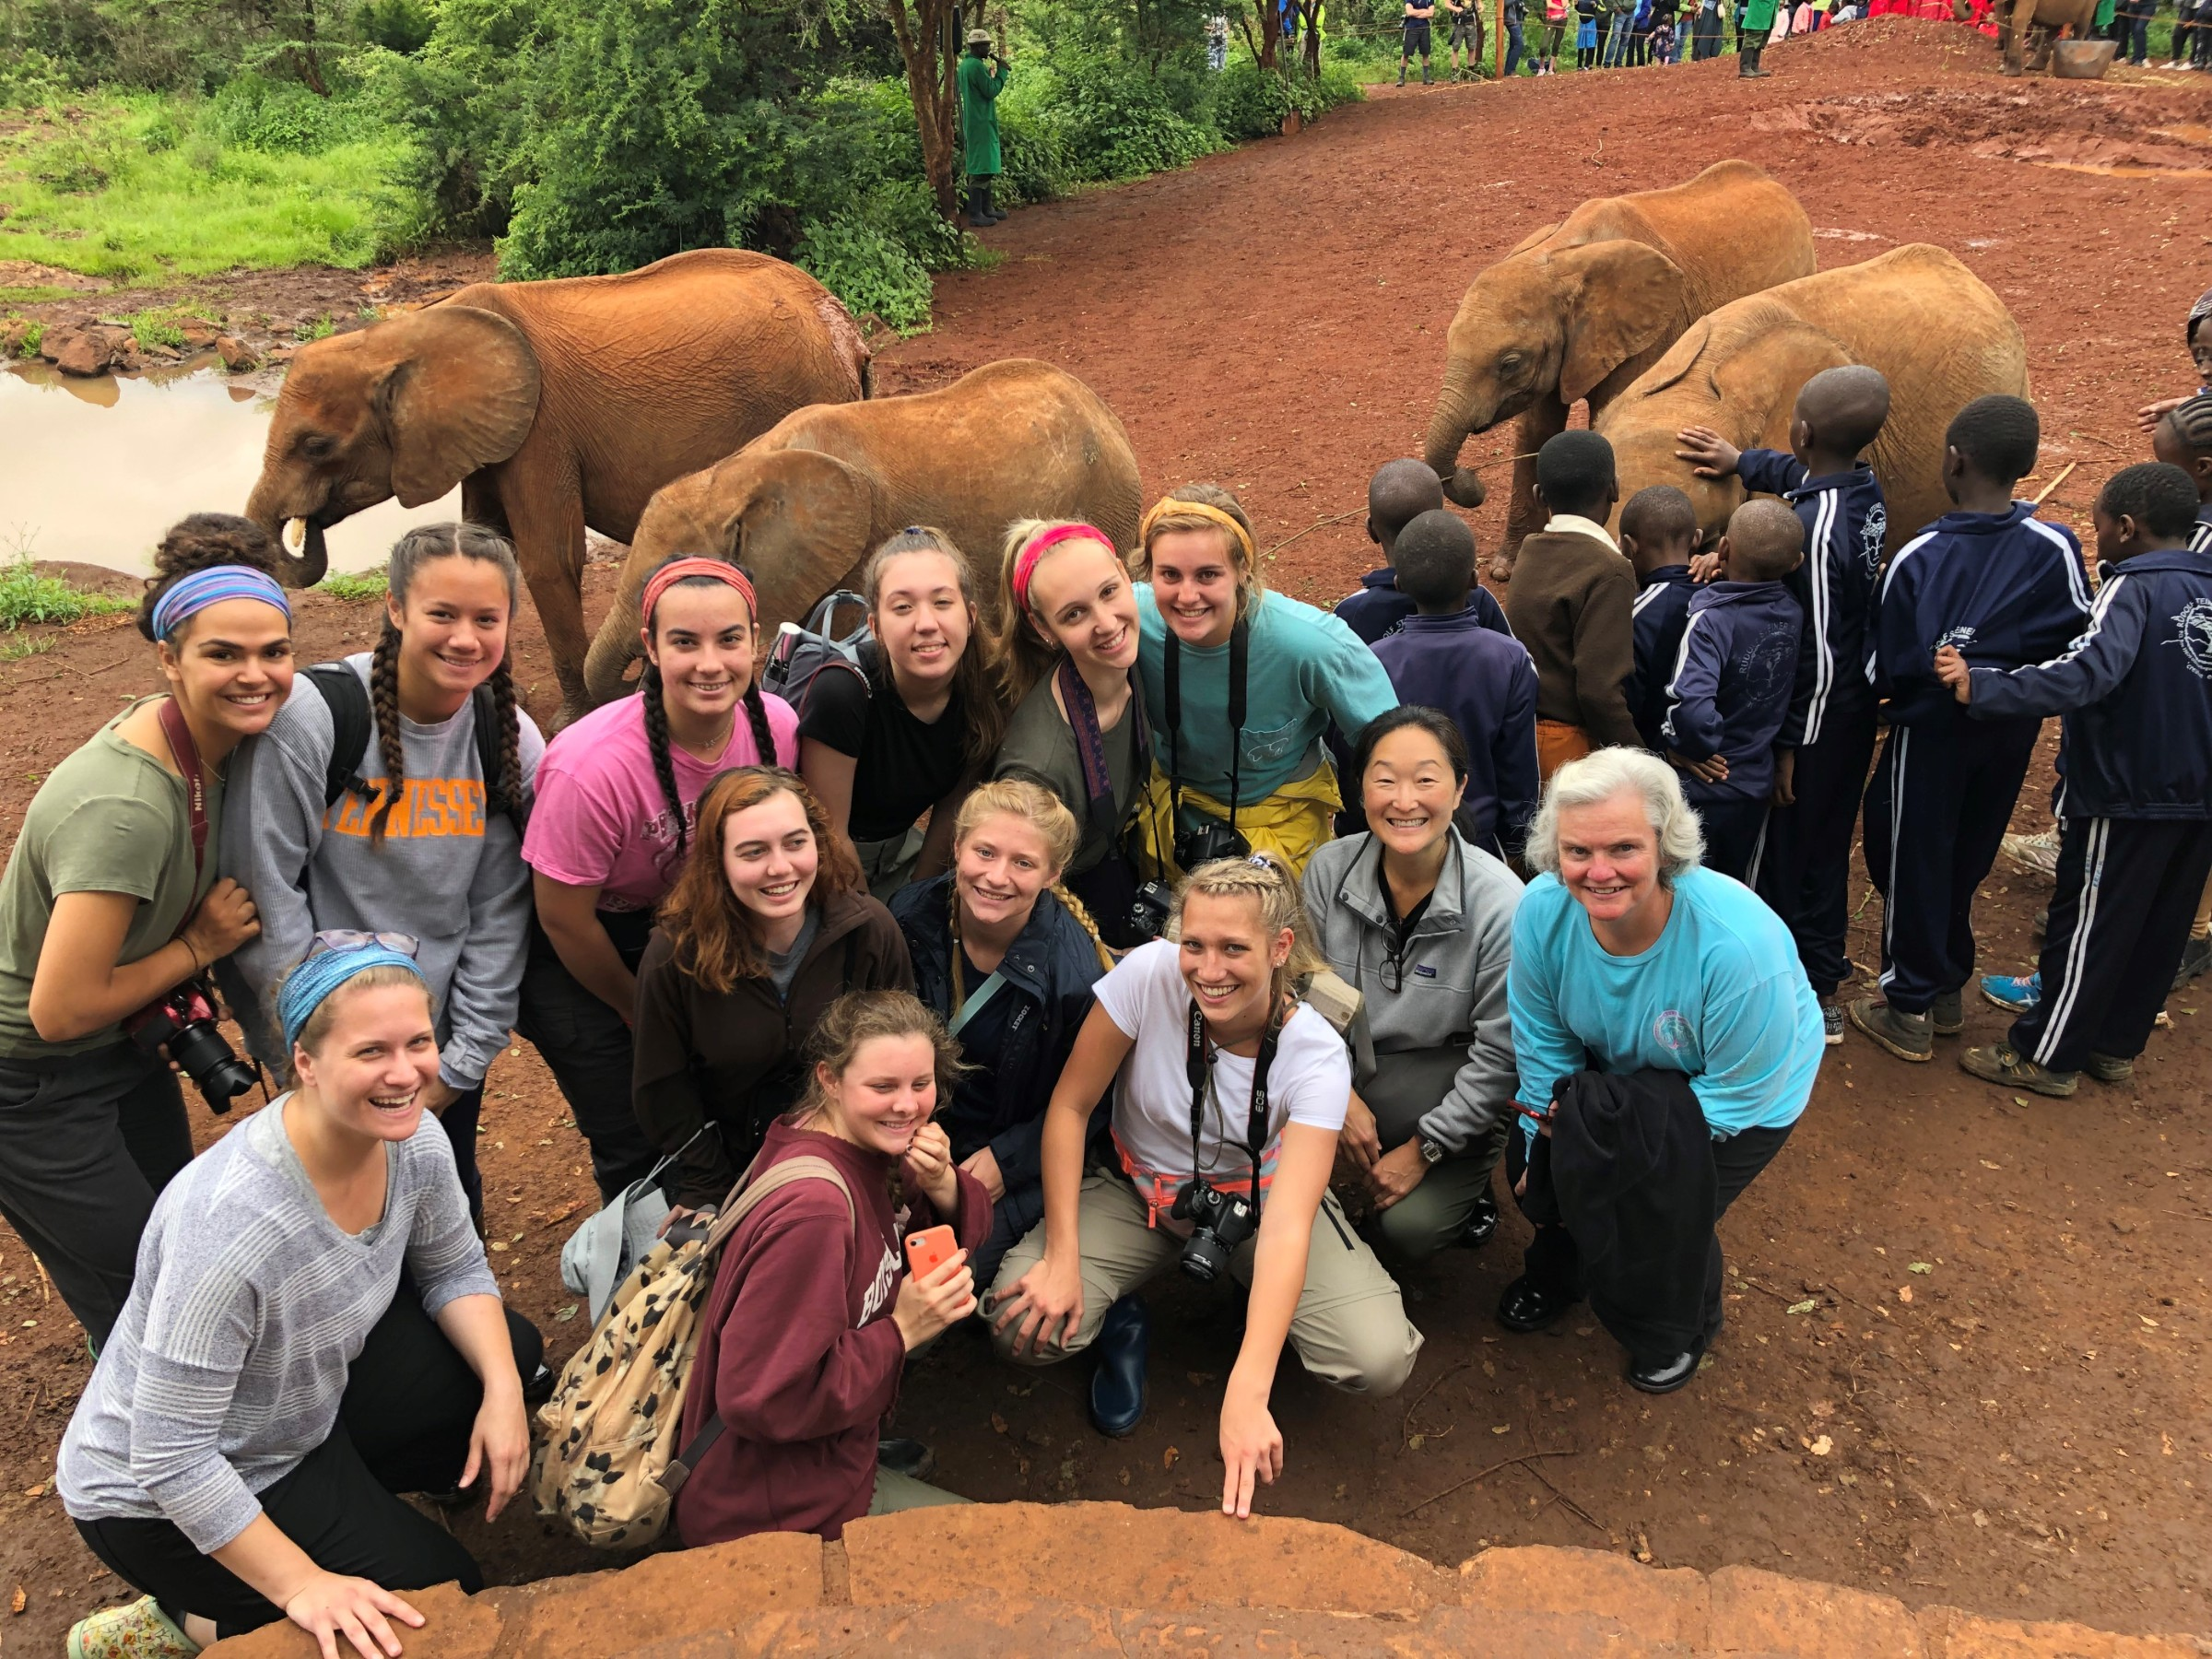 Chronicles of Mrs. Cory: Visiting an Elephant Sanctuary